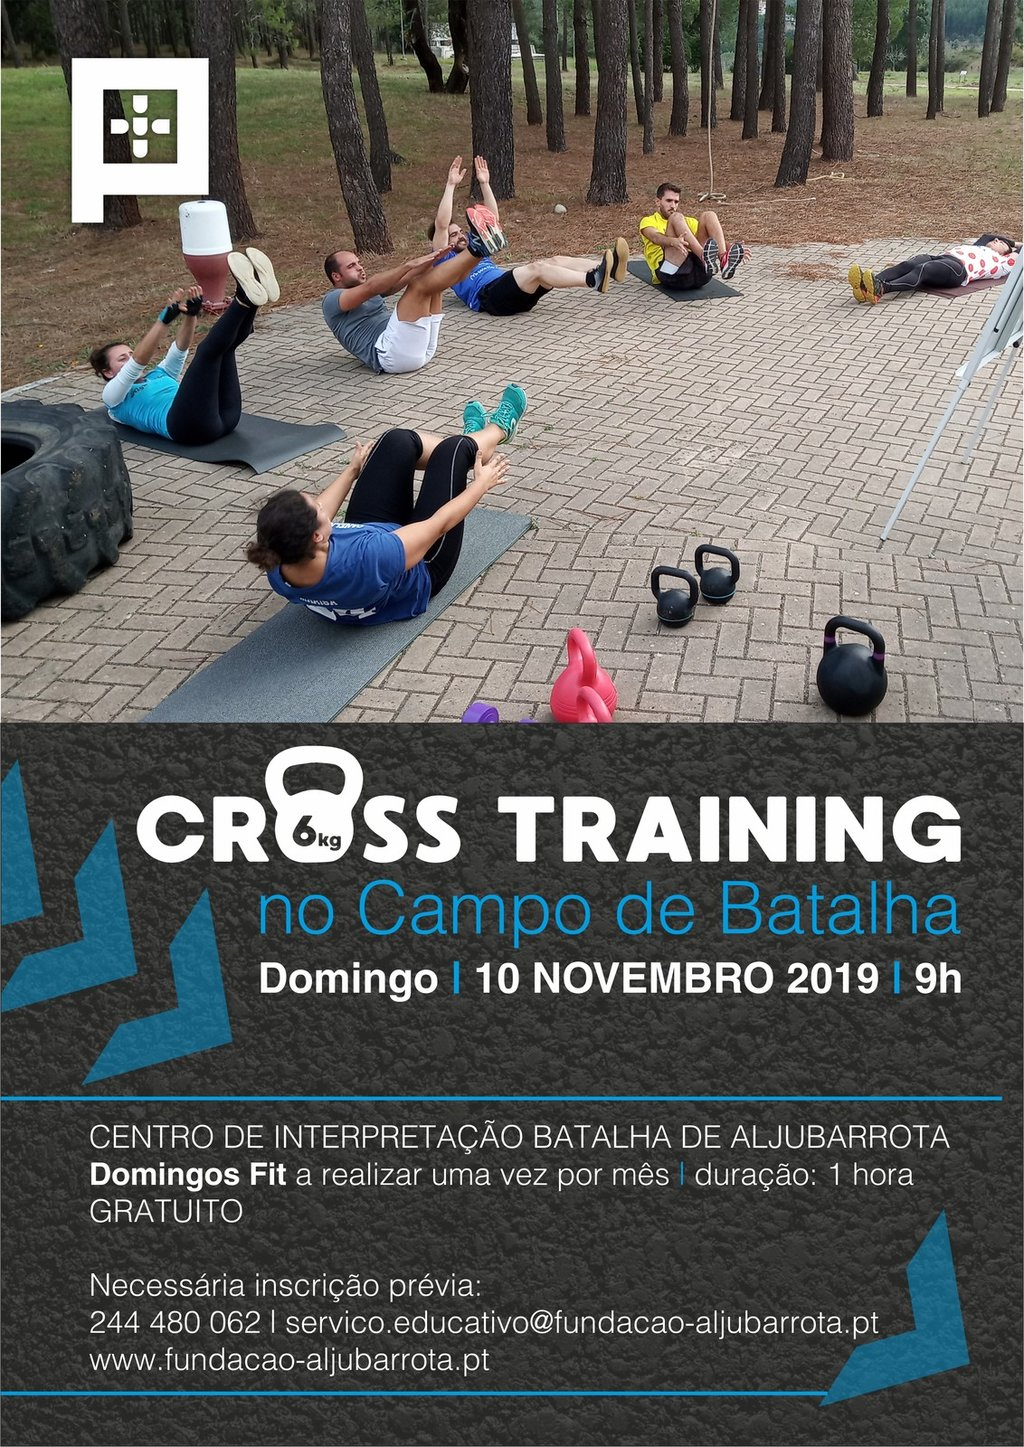 2019 11 10 cartaz cross training 1 1024 2500